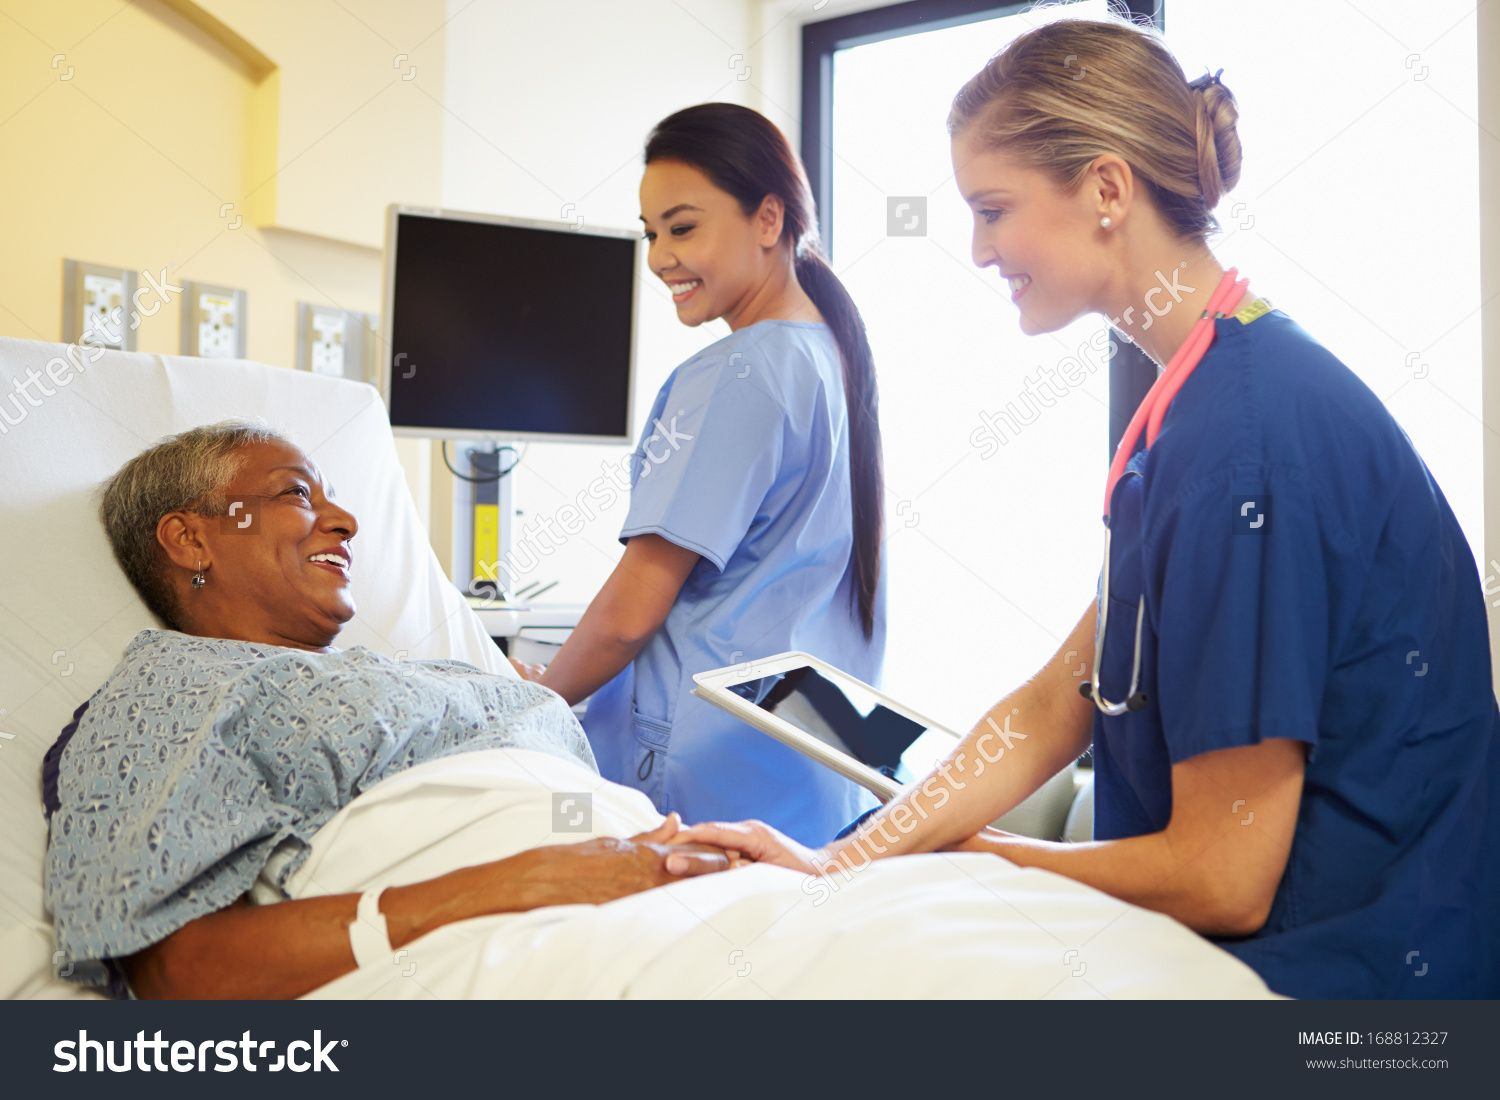 Nurse With Digital Tablet Talks To Woman In Hospital Bed